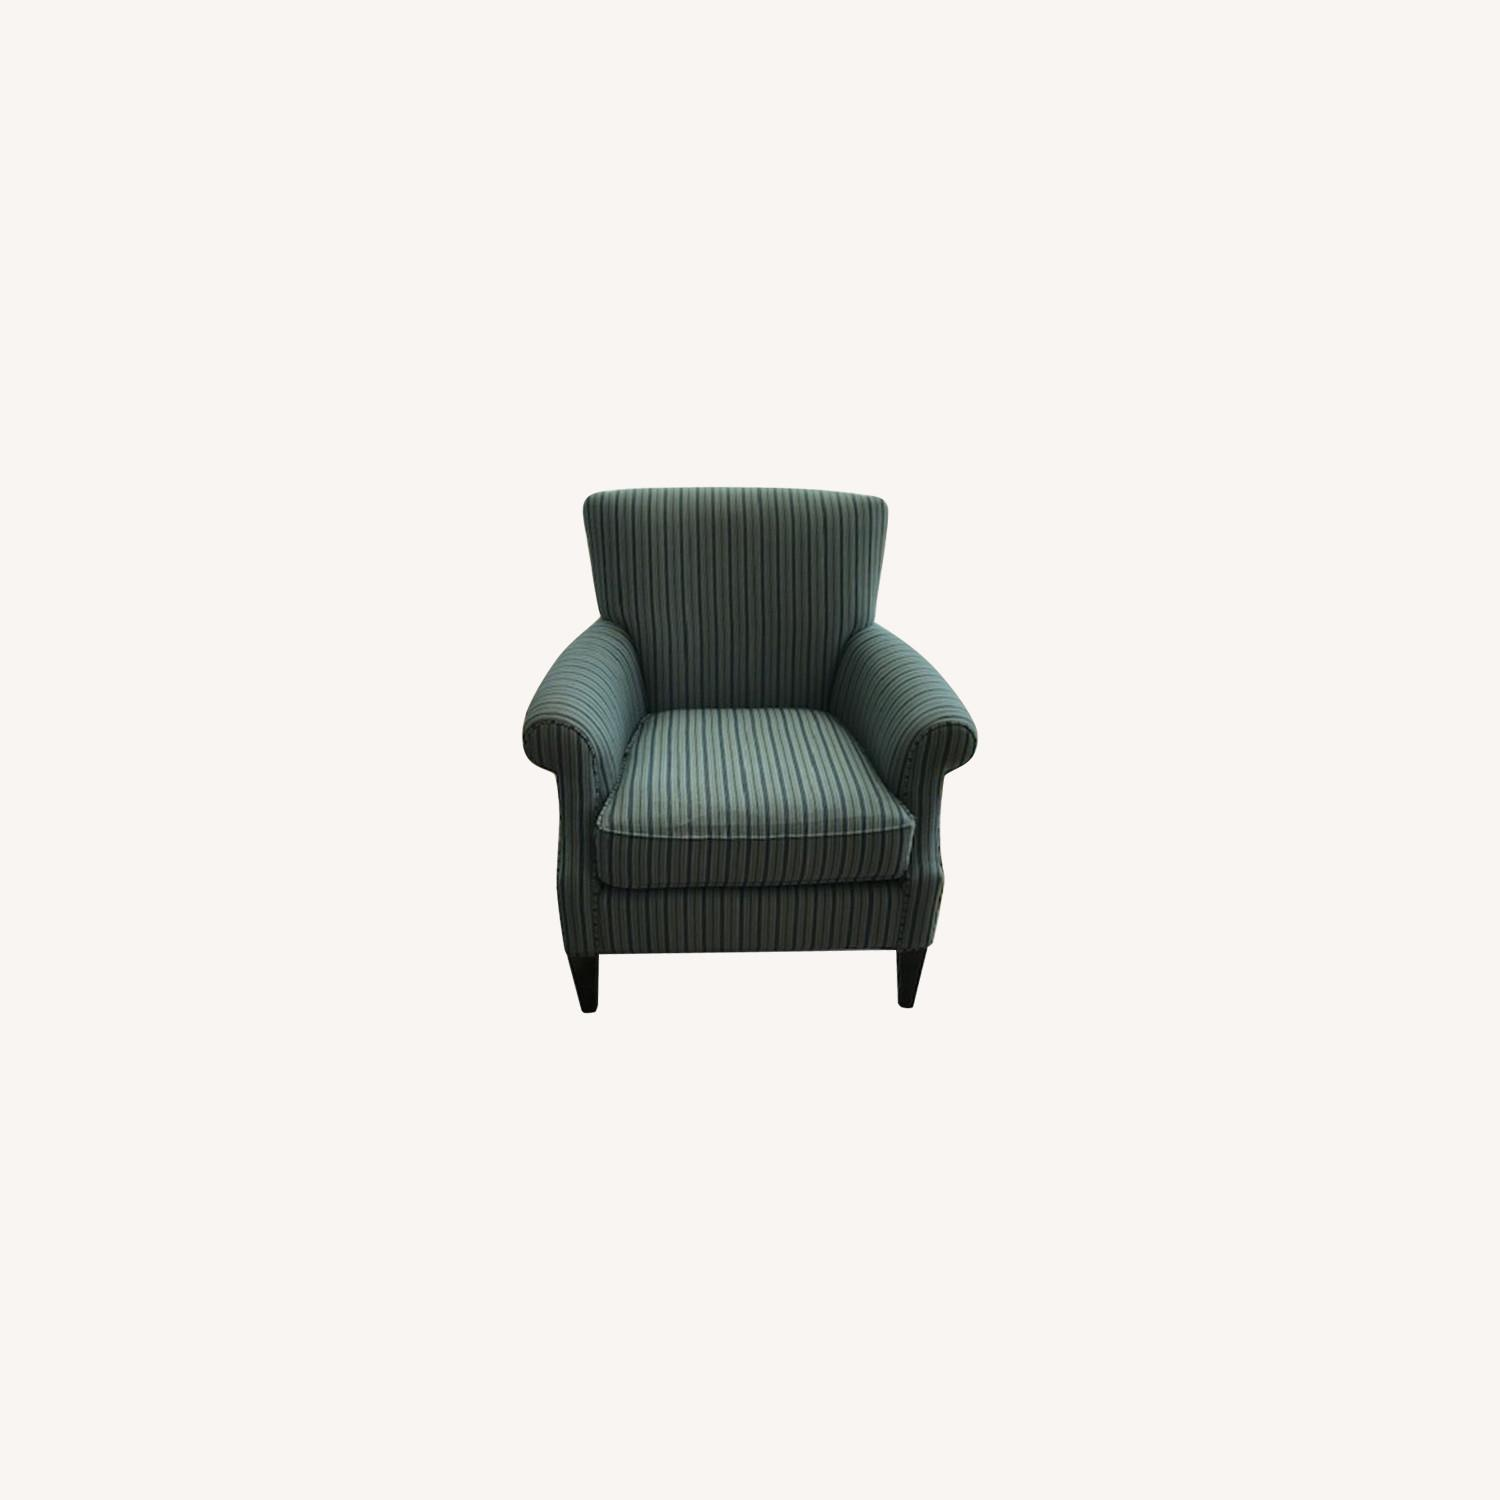 Crate & Barrel Elyse Chair - image-0